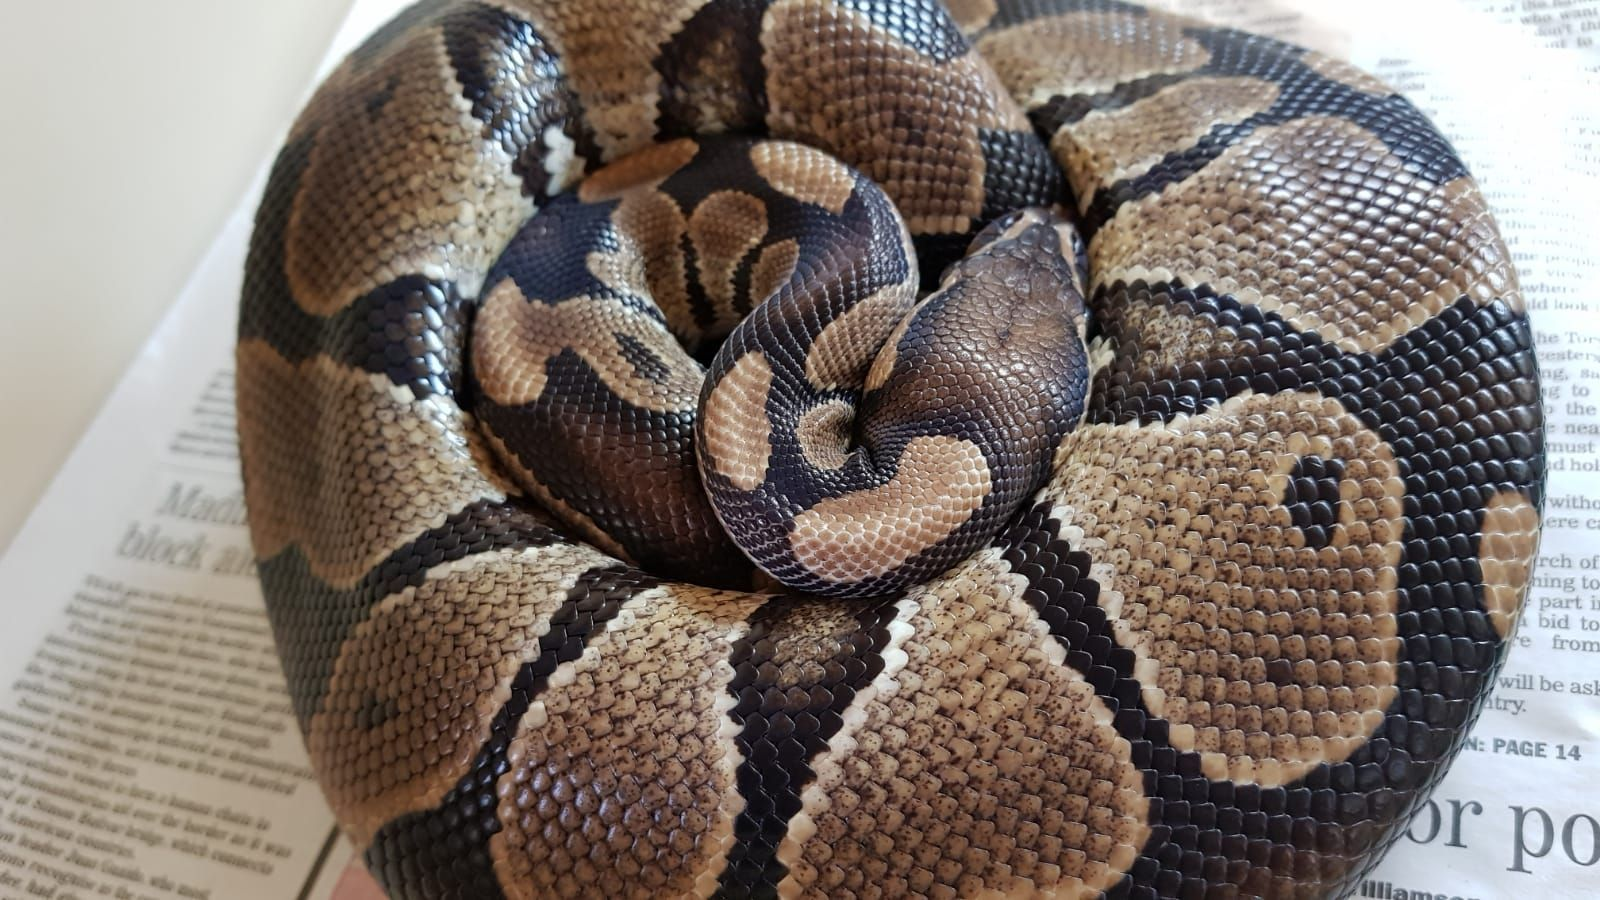 Snake feared abandoned being cared for by RSPCA staff